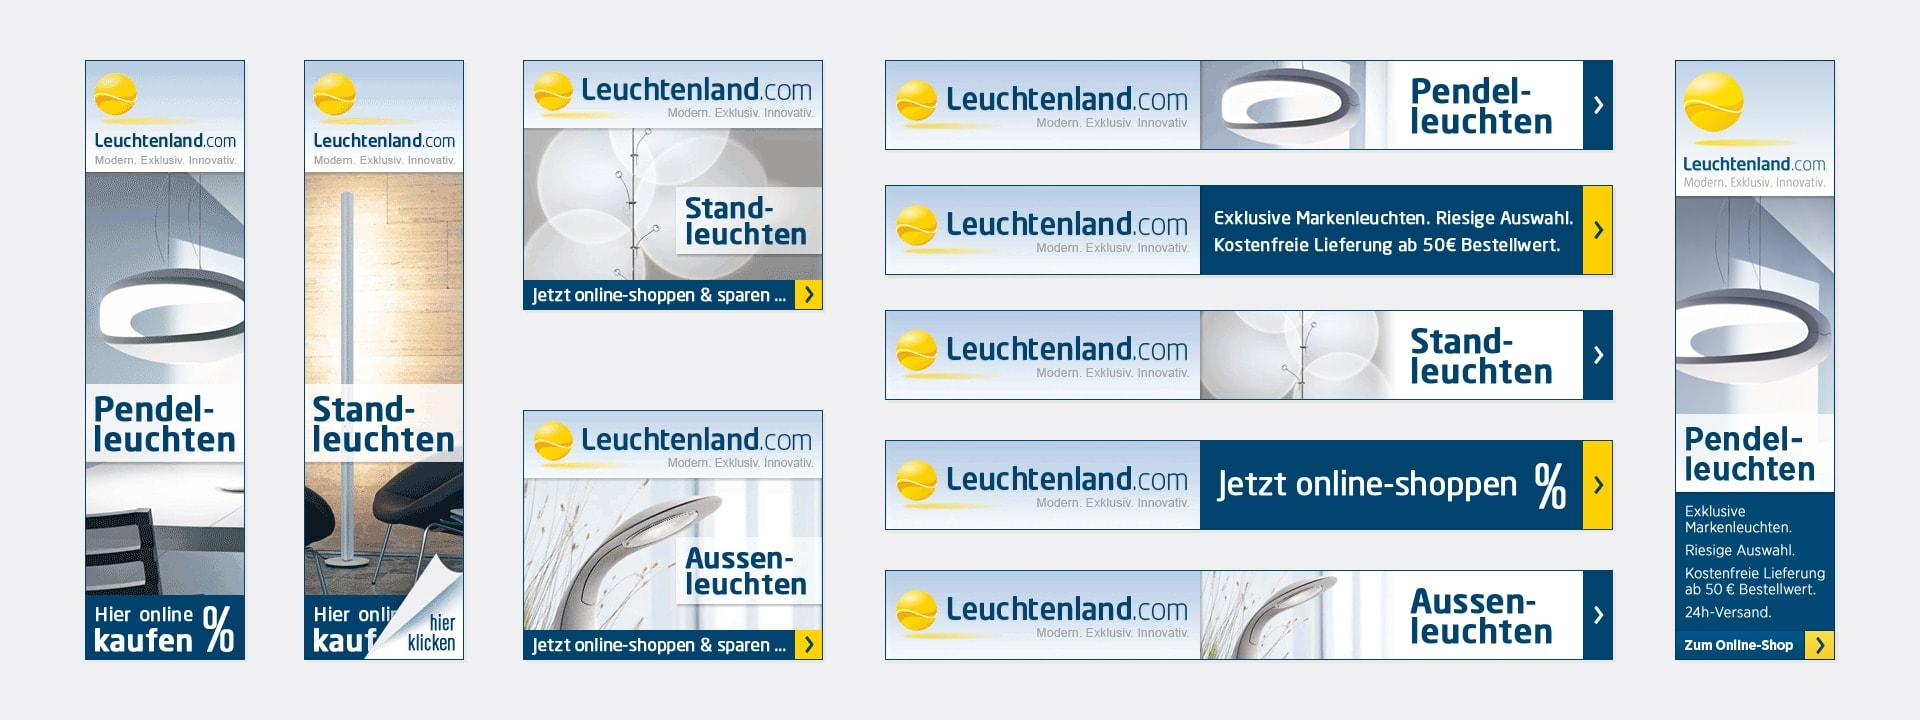 Banner: Skyscraper, Rectangle und Leaderboard Leuchtenland.com Online-Shop